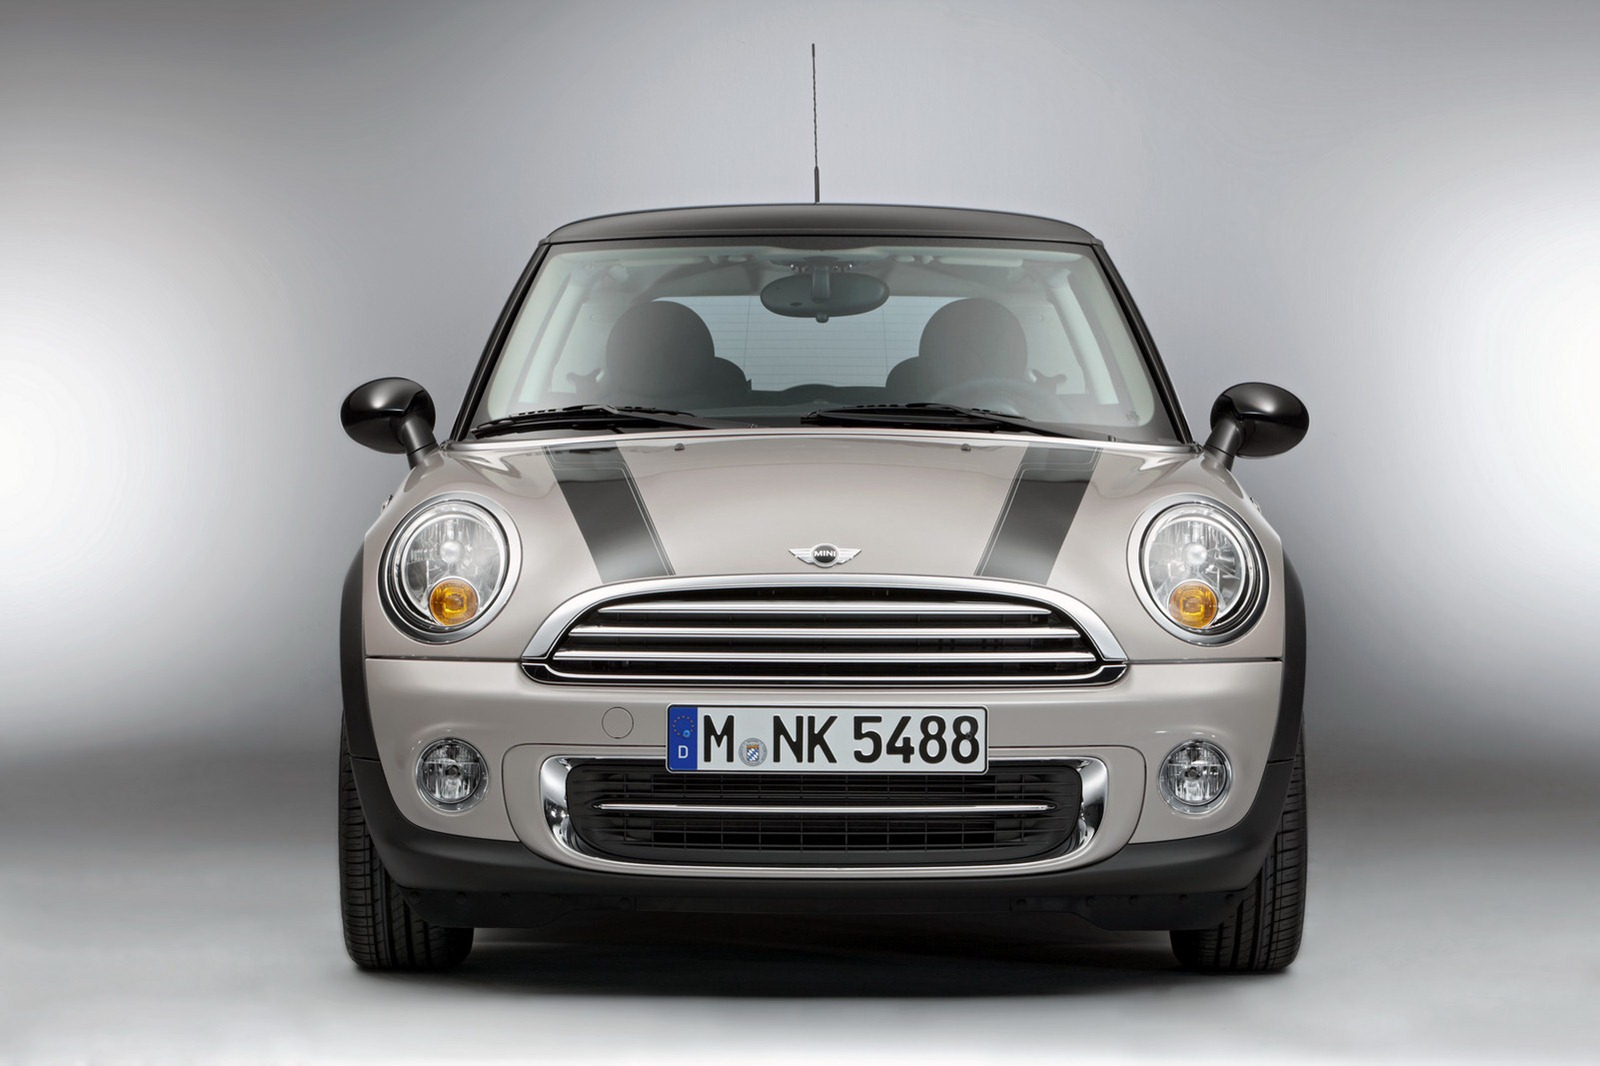 2012 Mini Cooper Baker Street Special Edition Top Speed